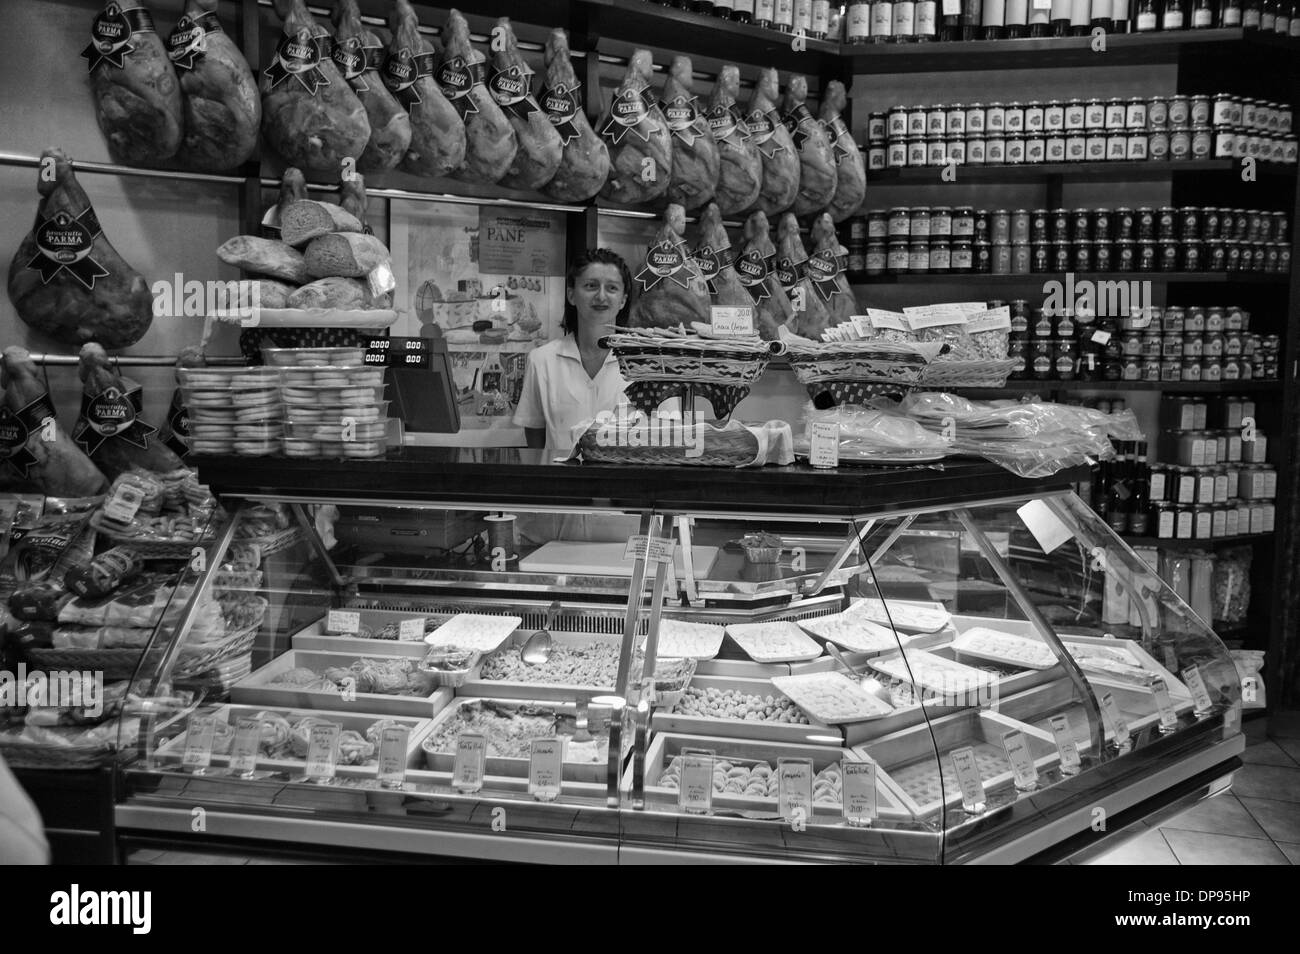 Pasta display in the Orefici Market in central Bologna, known as the gourmet capital of Italy. - Stock Image